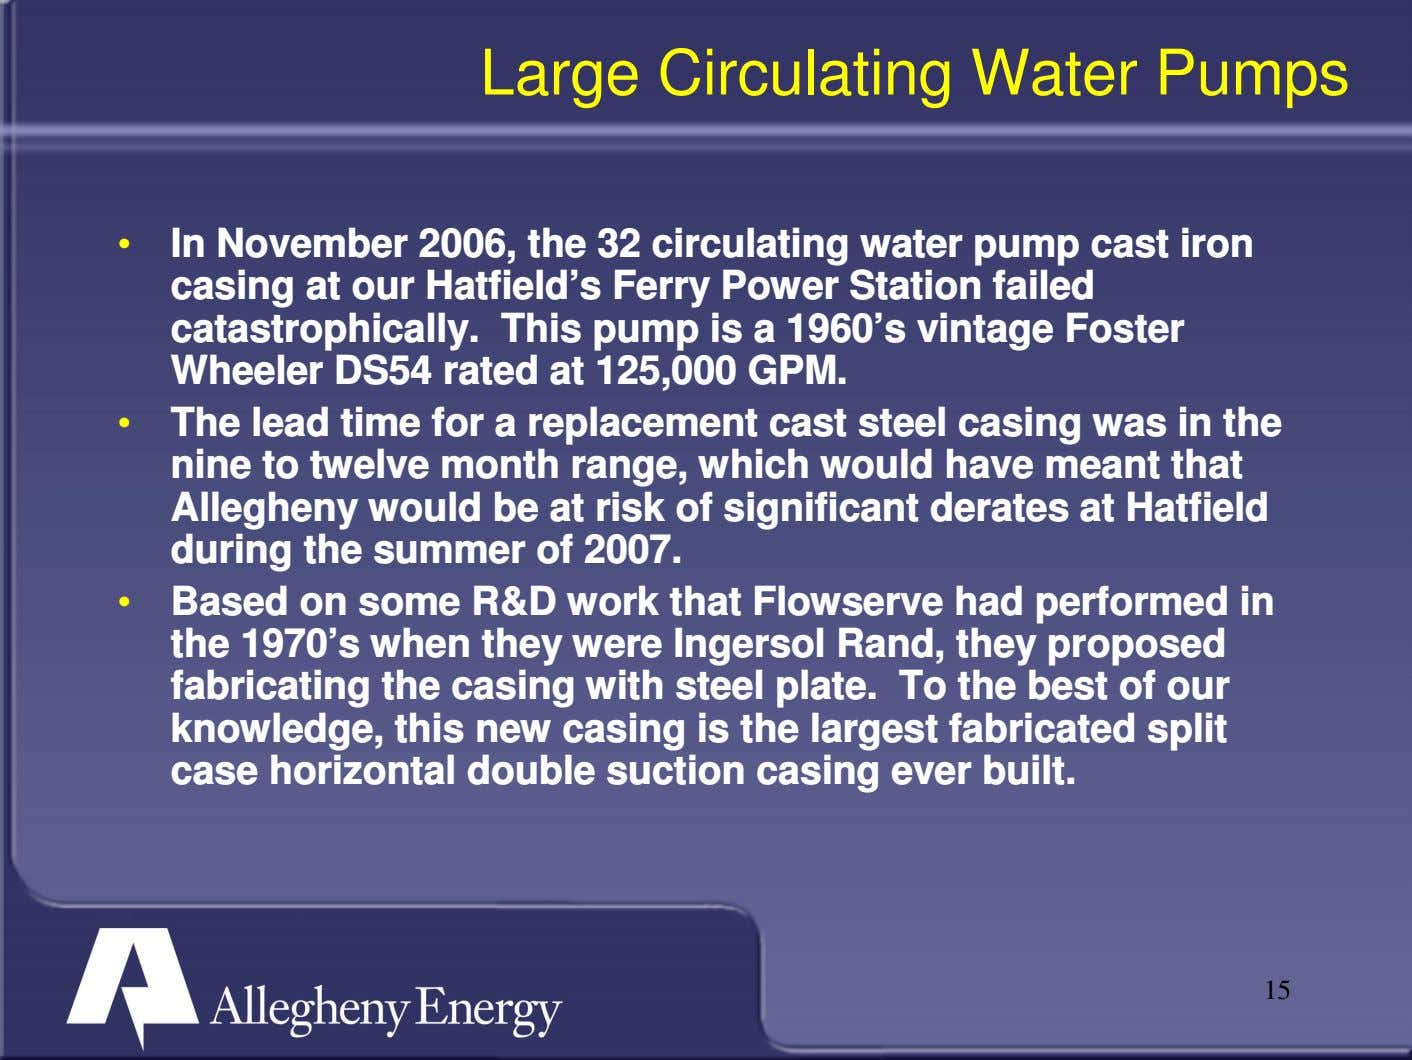 Large Circulating Water Pumps • In November 2006, the 32 circulating water pump cast iron